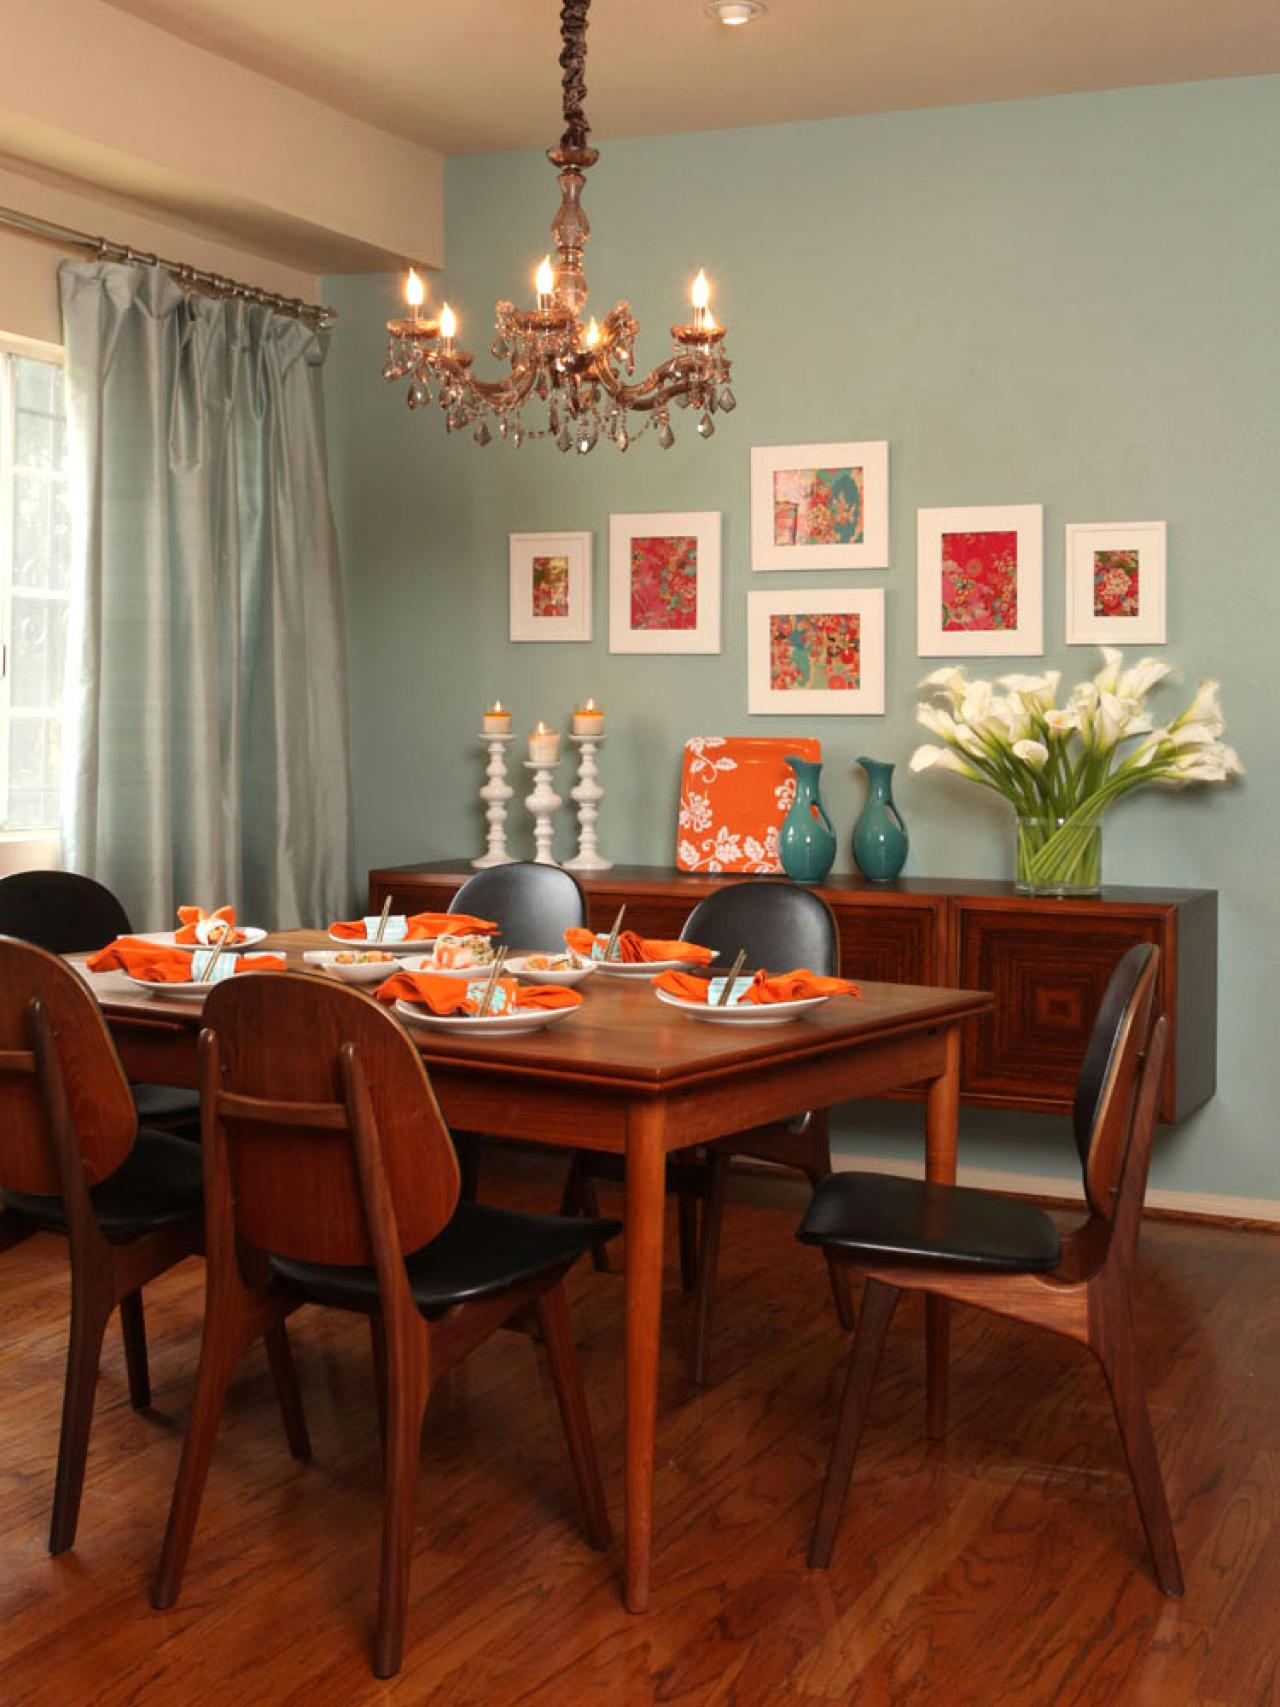 our fave colorful dining rooms living room and dining room decorating ideas and design hgtv. Black Bedroom Furniture Sets. Home Design Ideas